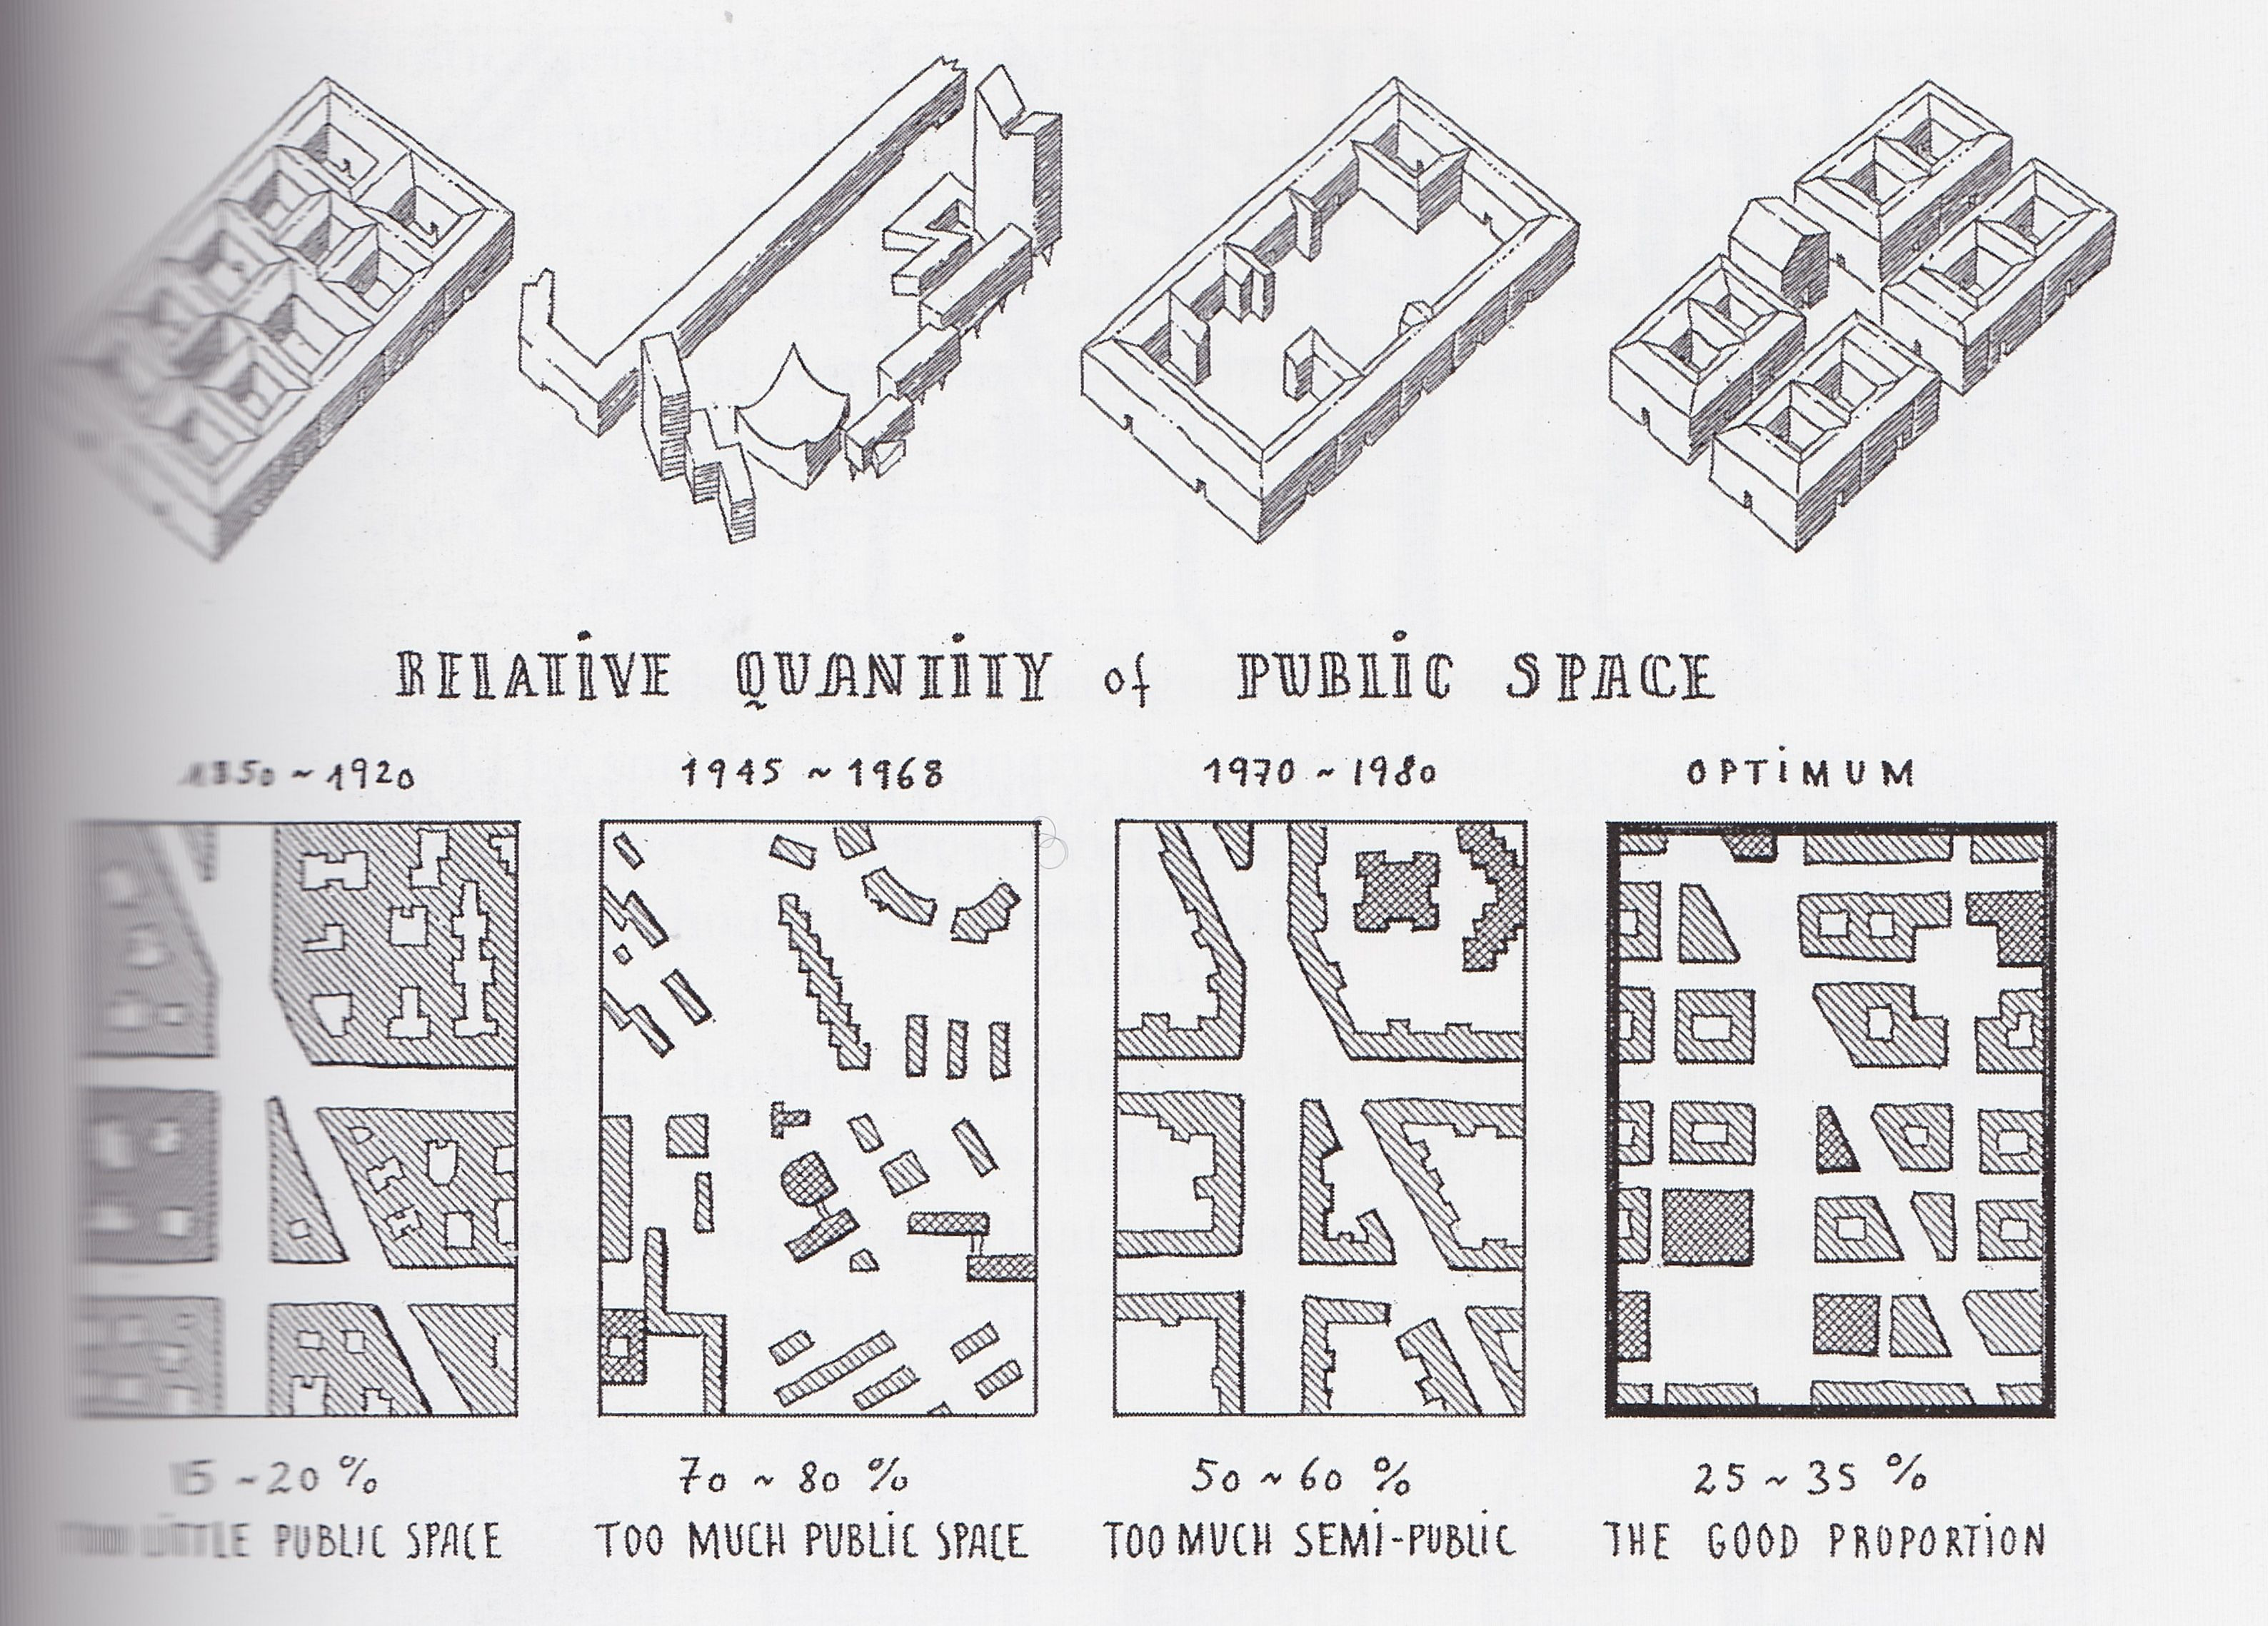 the evolution of public space according to the principles and history of new urbanism For the development of the historic santa fe rail yard district spaces the goal of this thesis is to identify the qualities and architectural elements of successful urban spaces and apply those same qualities and elements to the suburban according to new urbanism the basic principles of good urban.